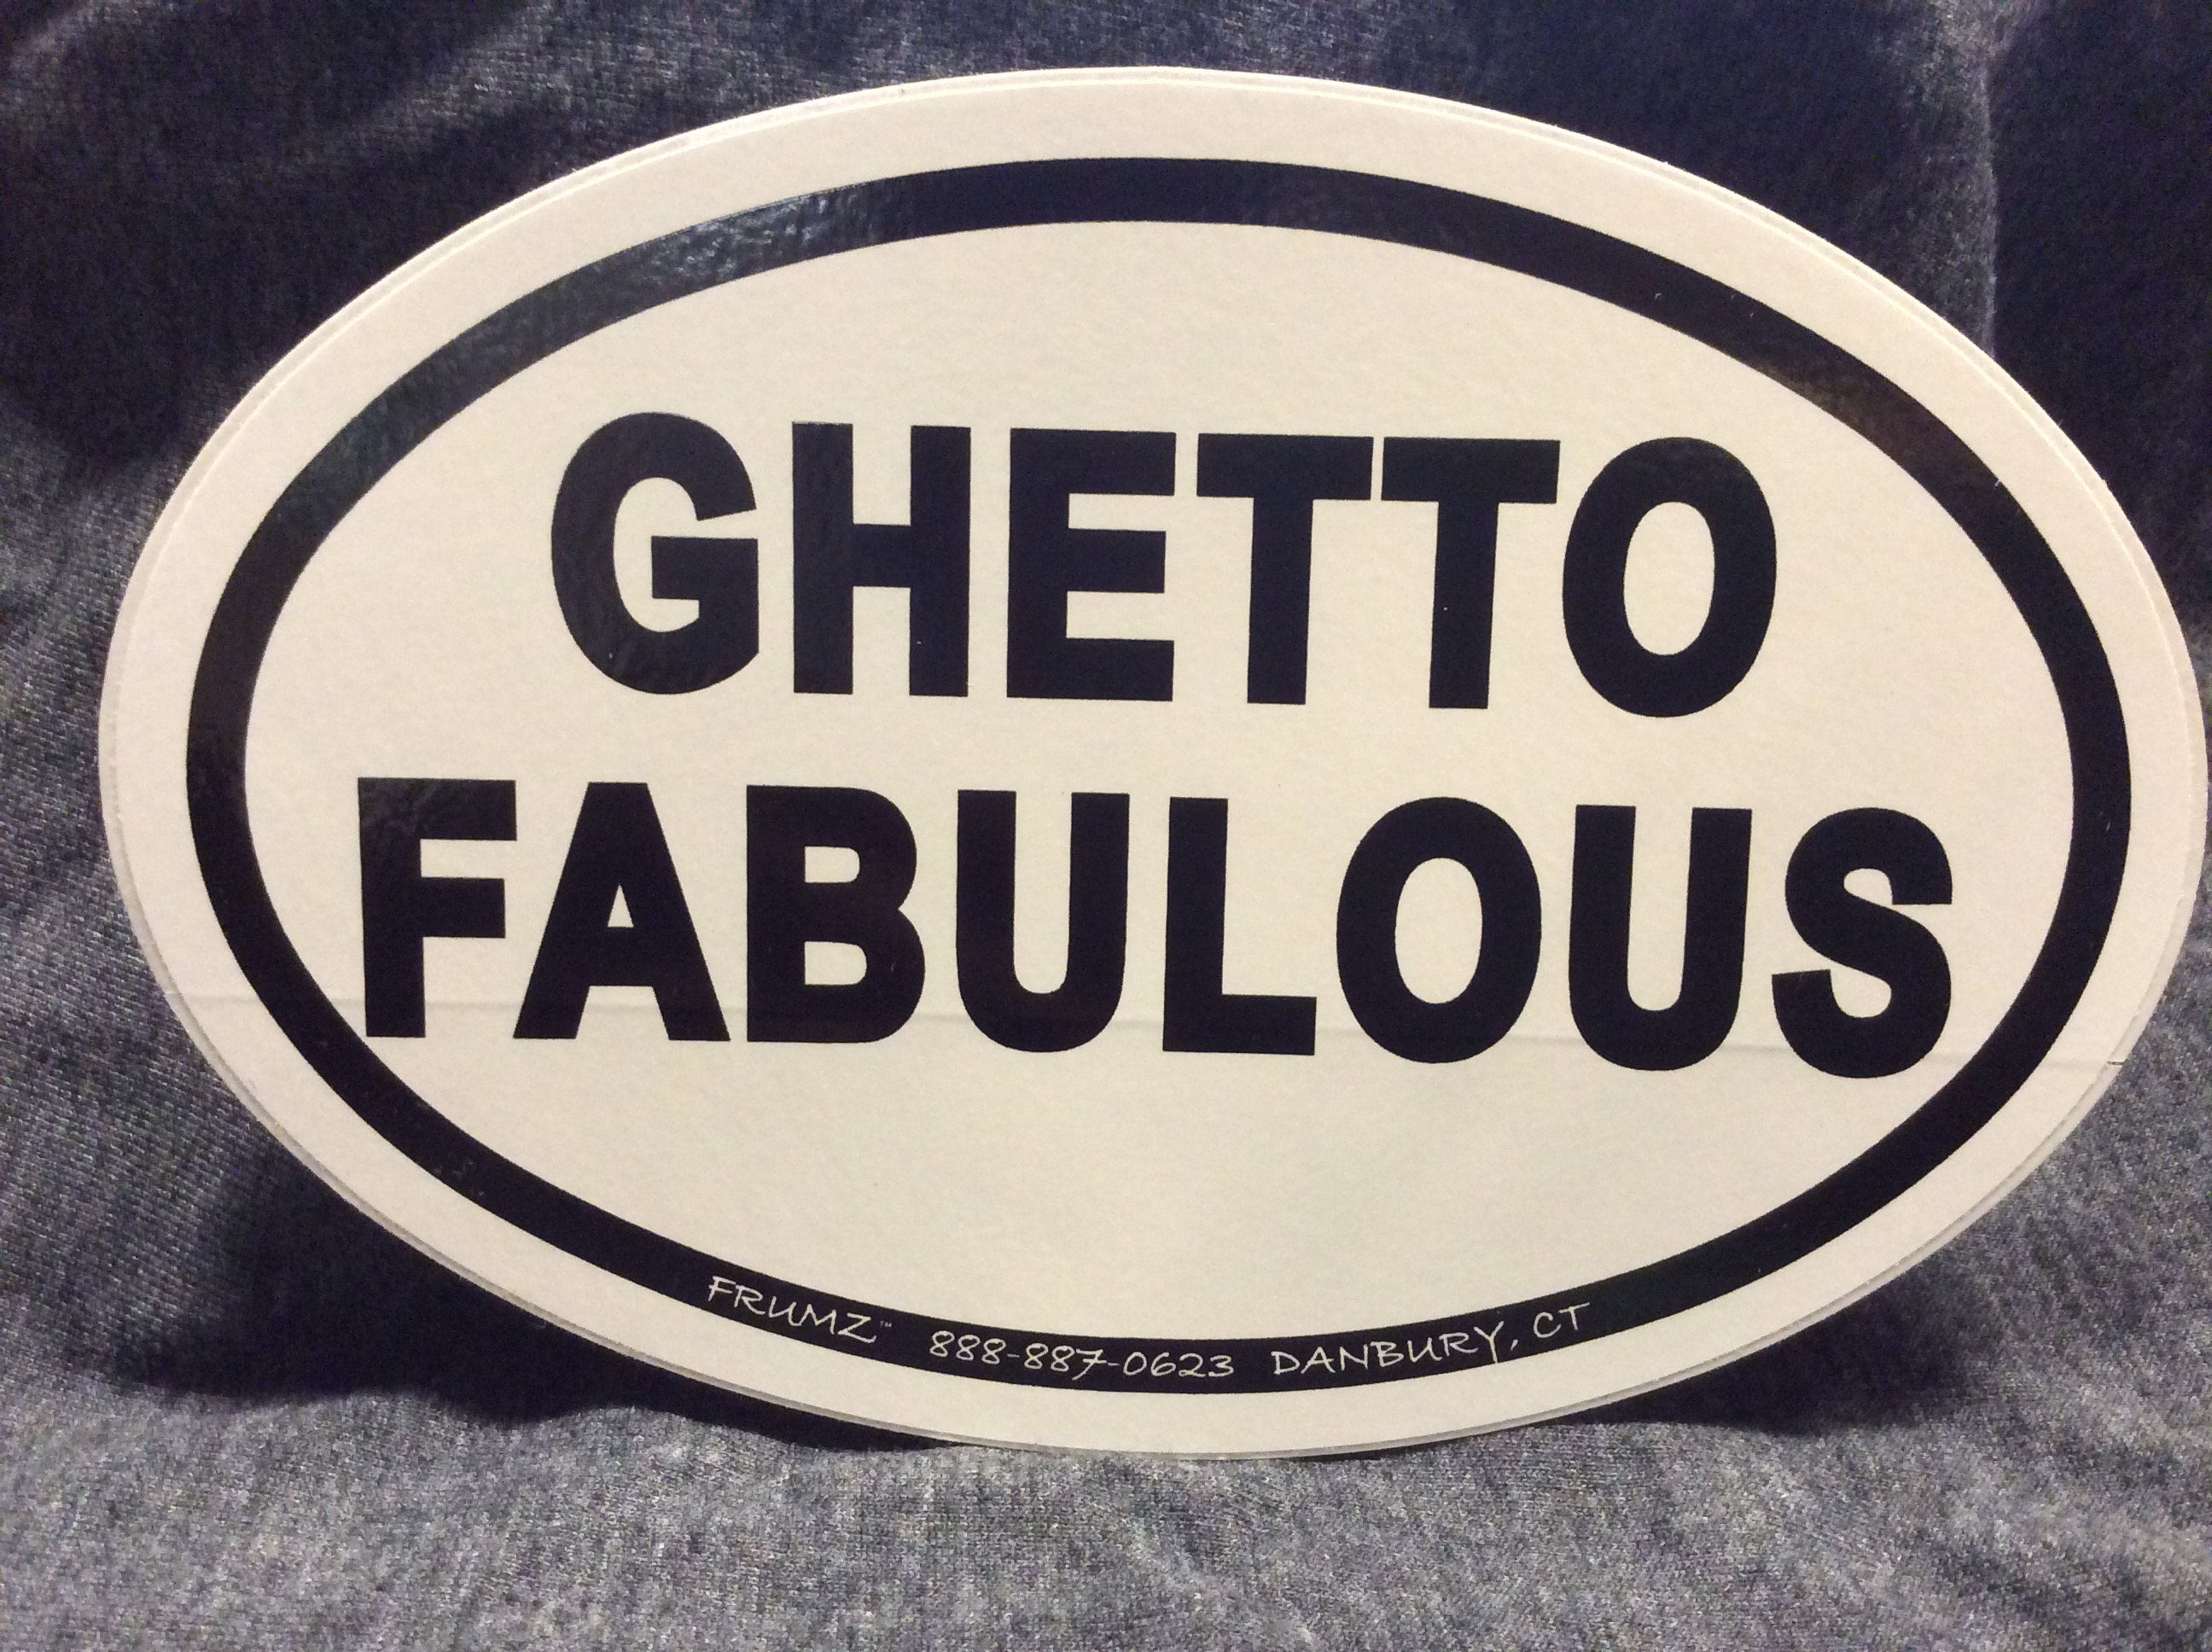 GHETTO FABULOUS oval sticker decal